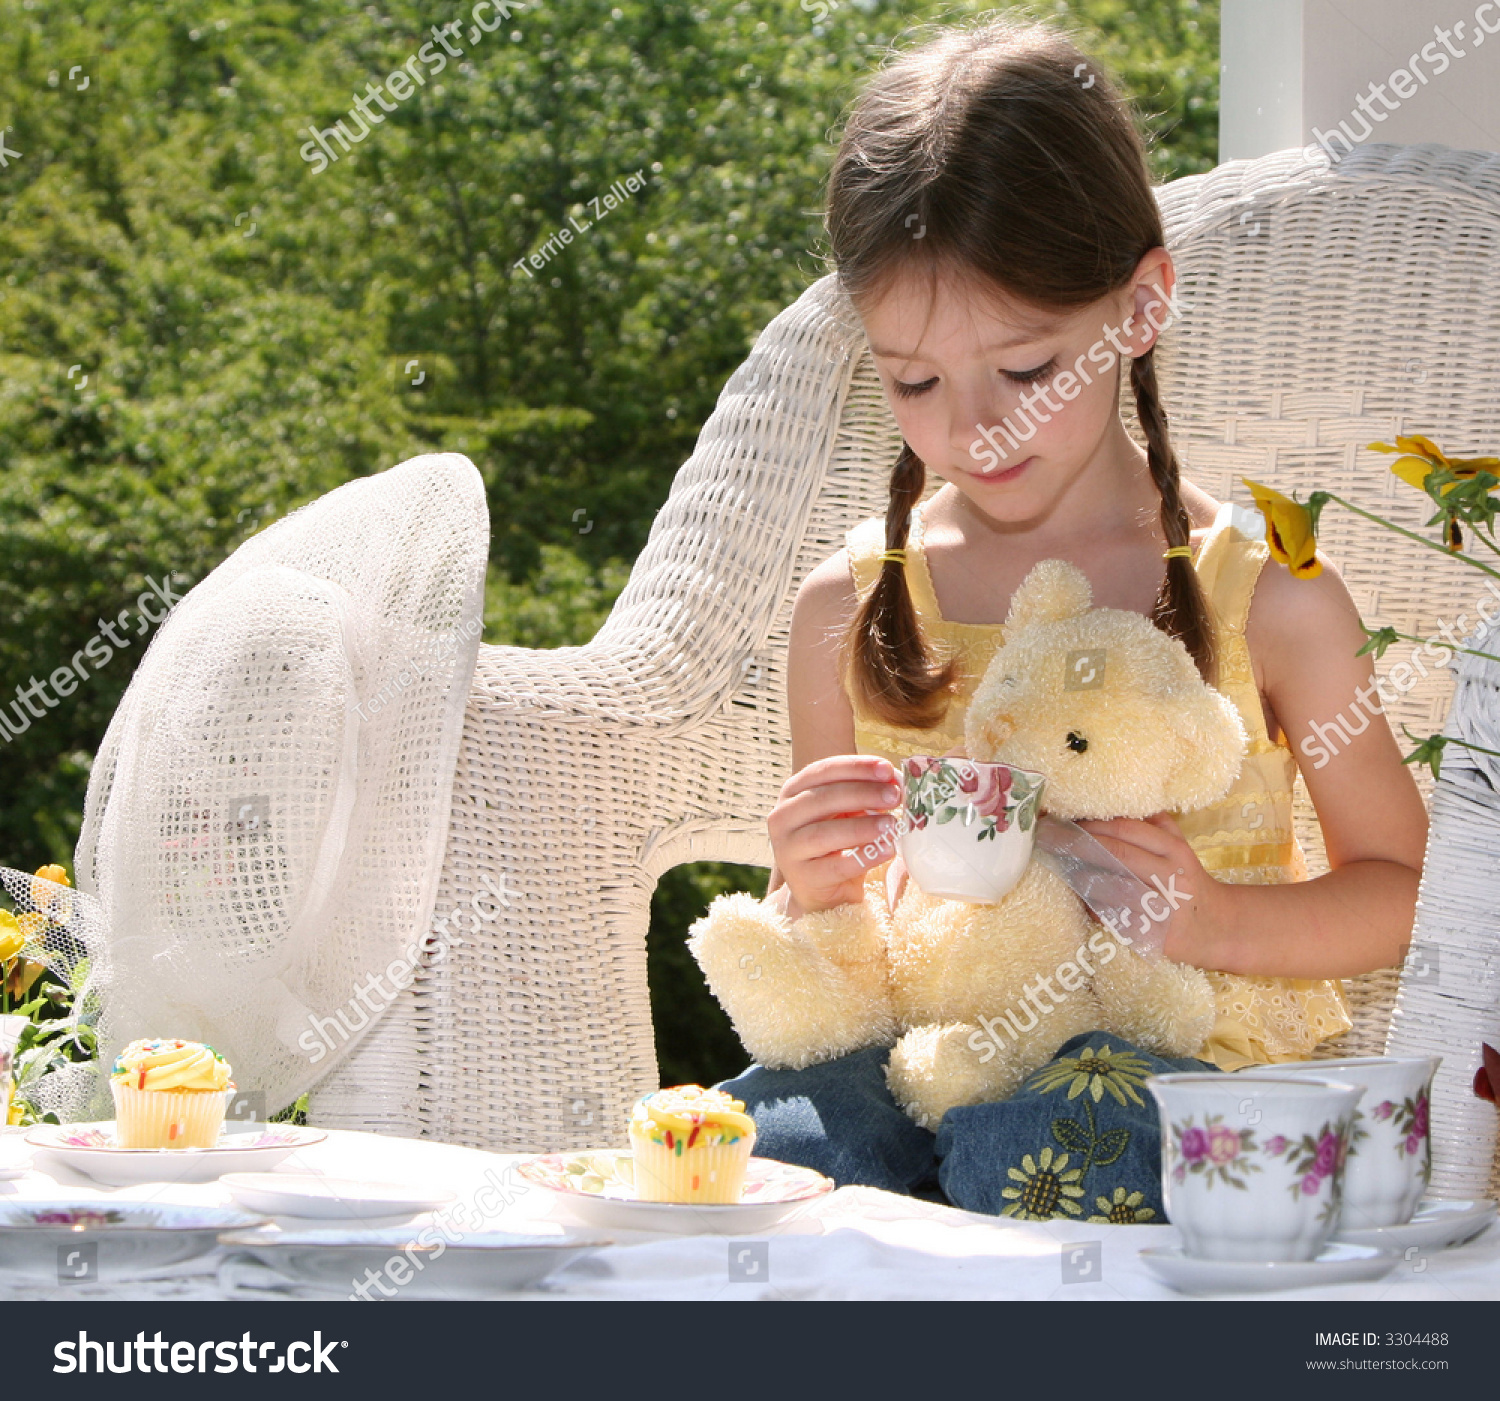 Little Girl In Wicker Chair Having Tea Party With Teddy